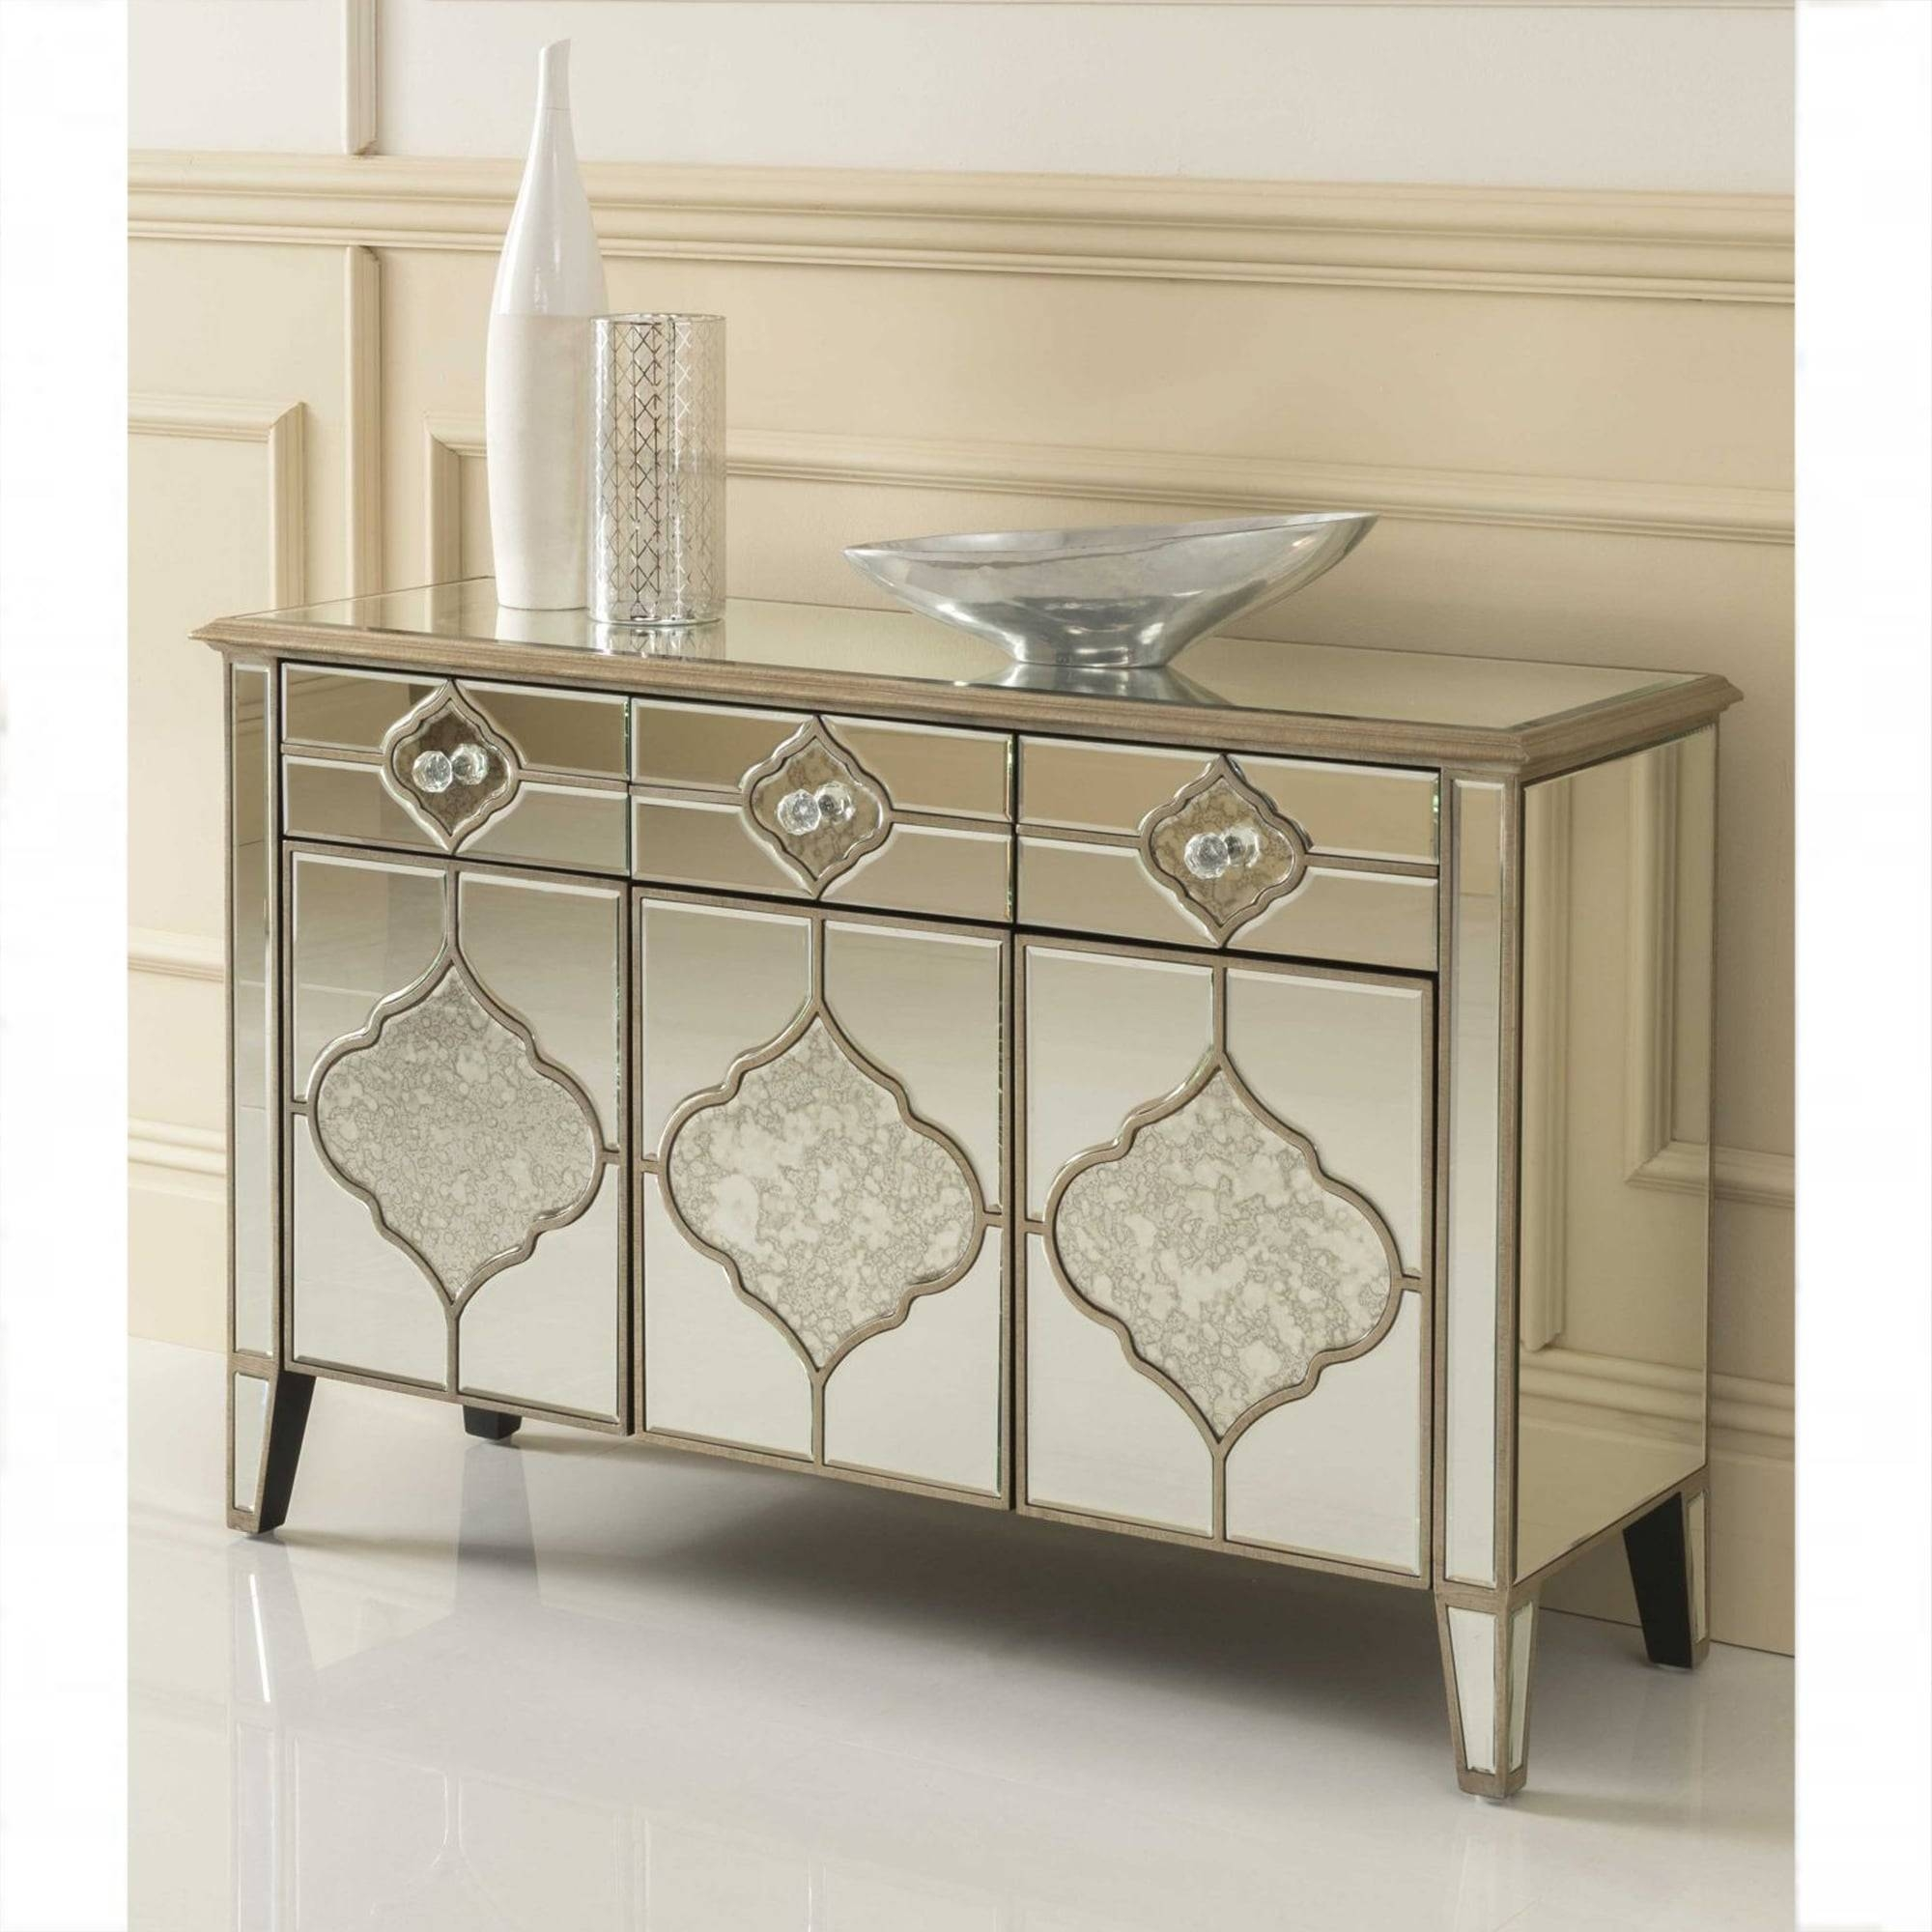 20 Ideas Of Venetian Mirrored Sideboard